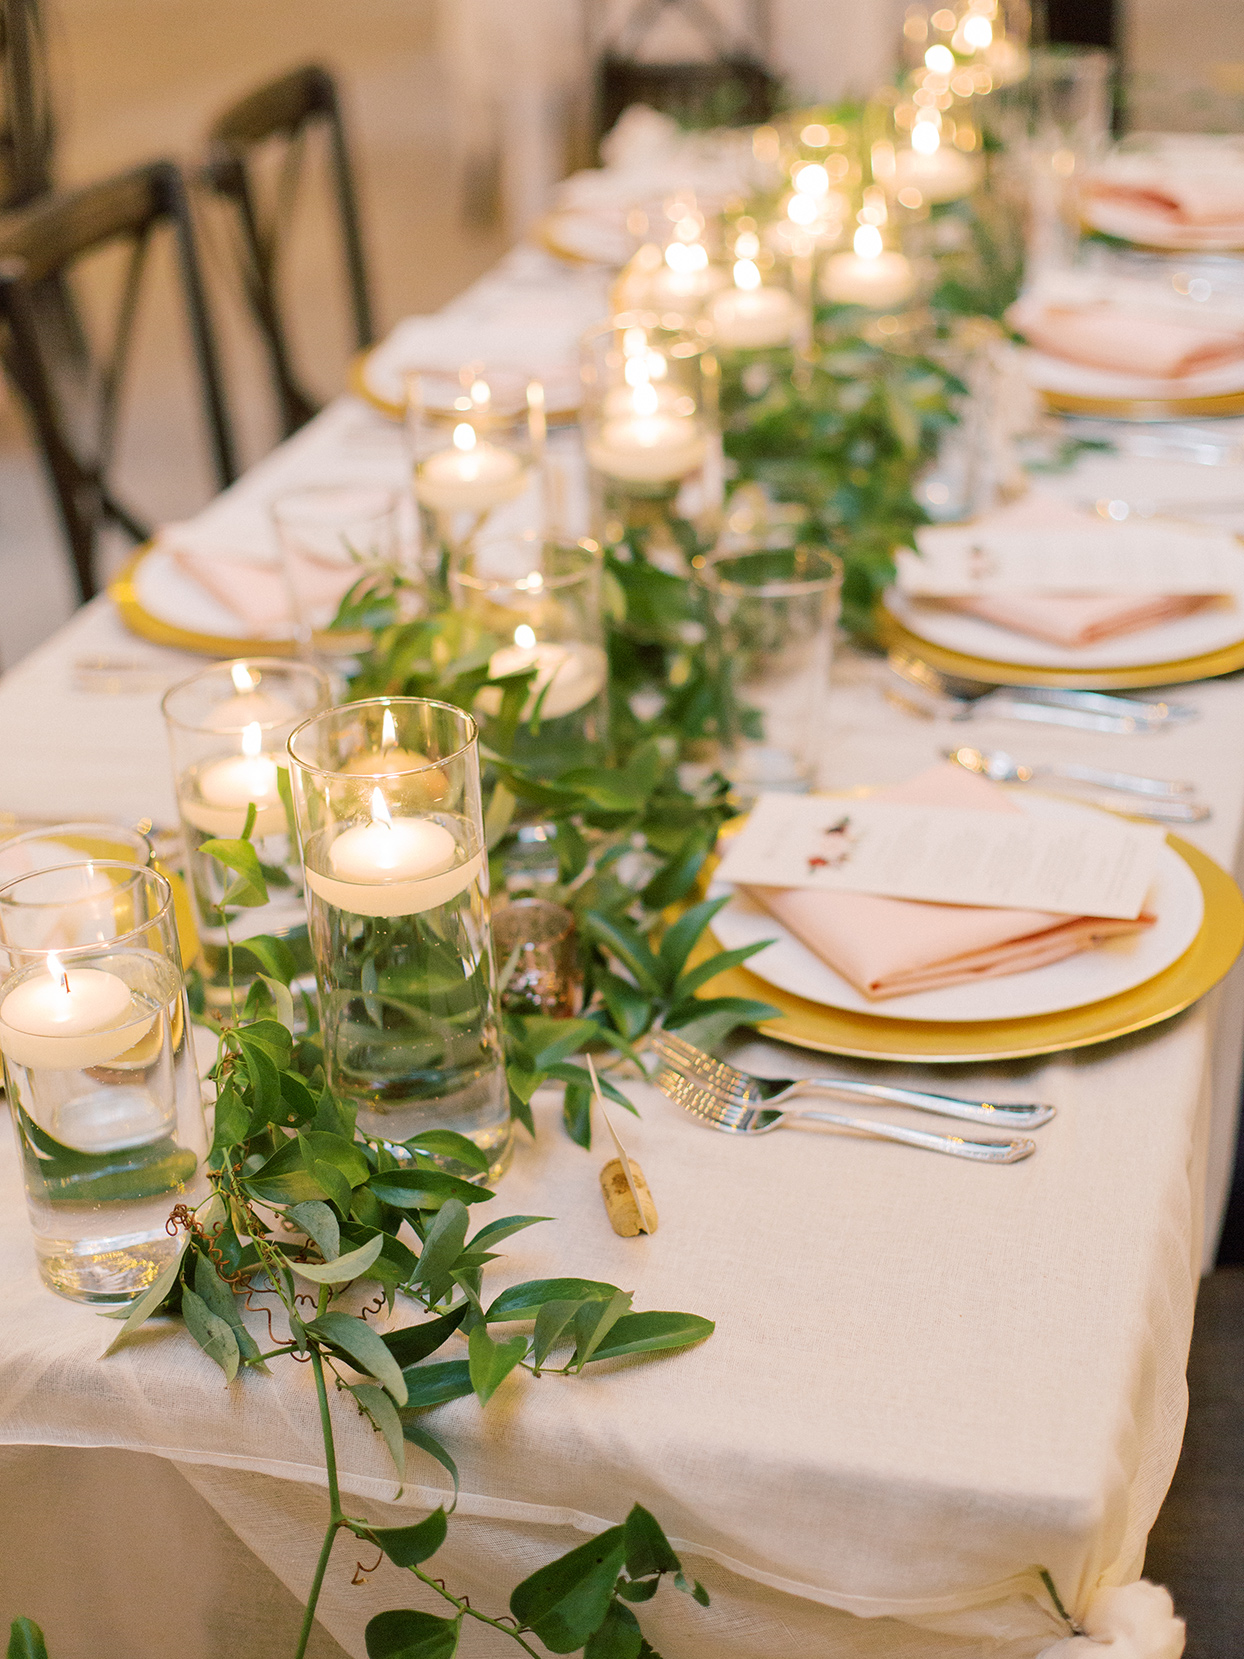 rebecca isaac wedding reception long table with candles and greenery